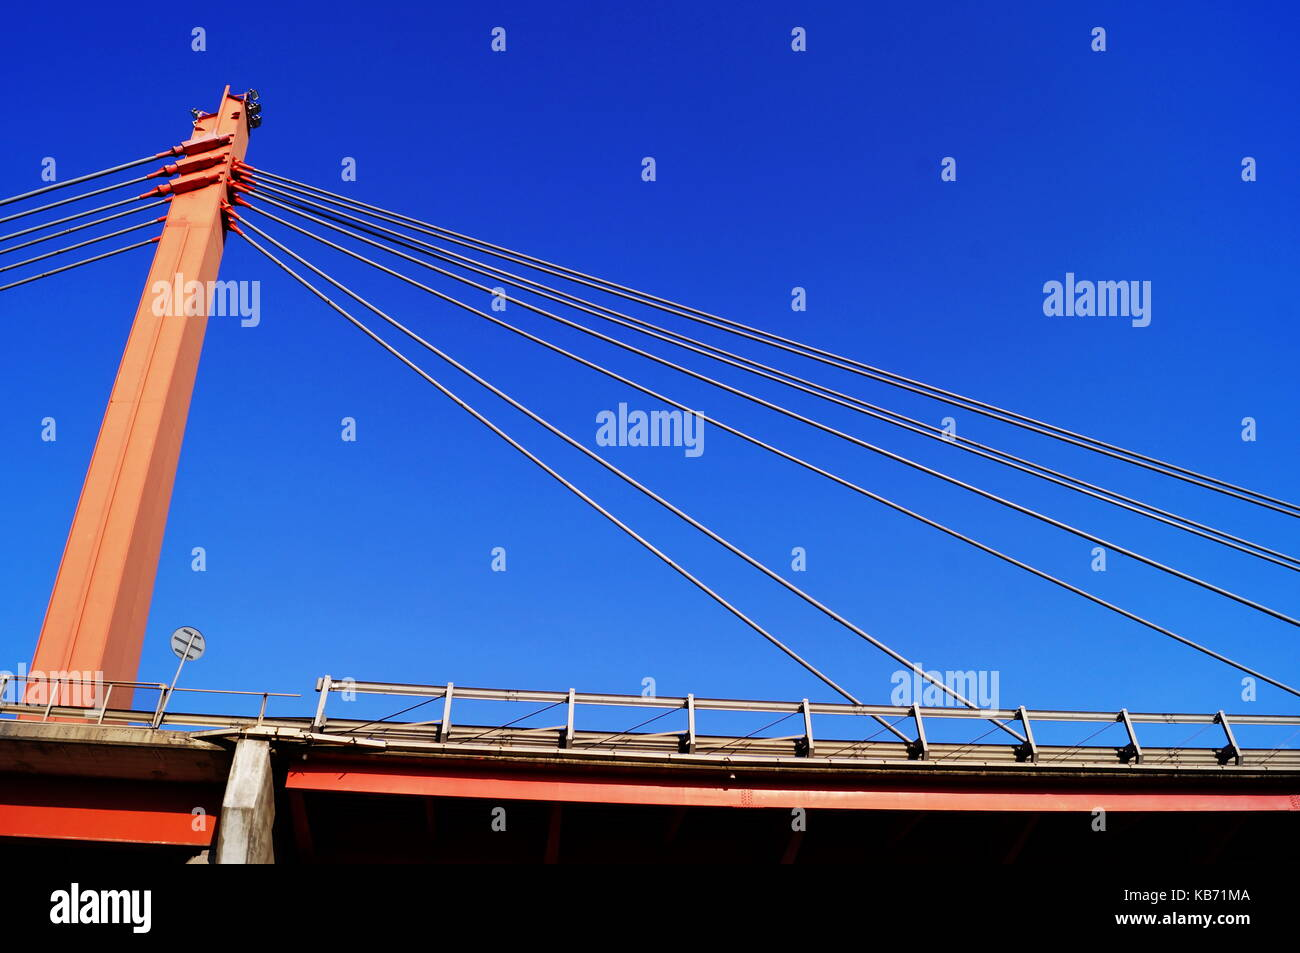 Indiano bridge Florence Italie Banque D'Images